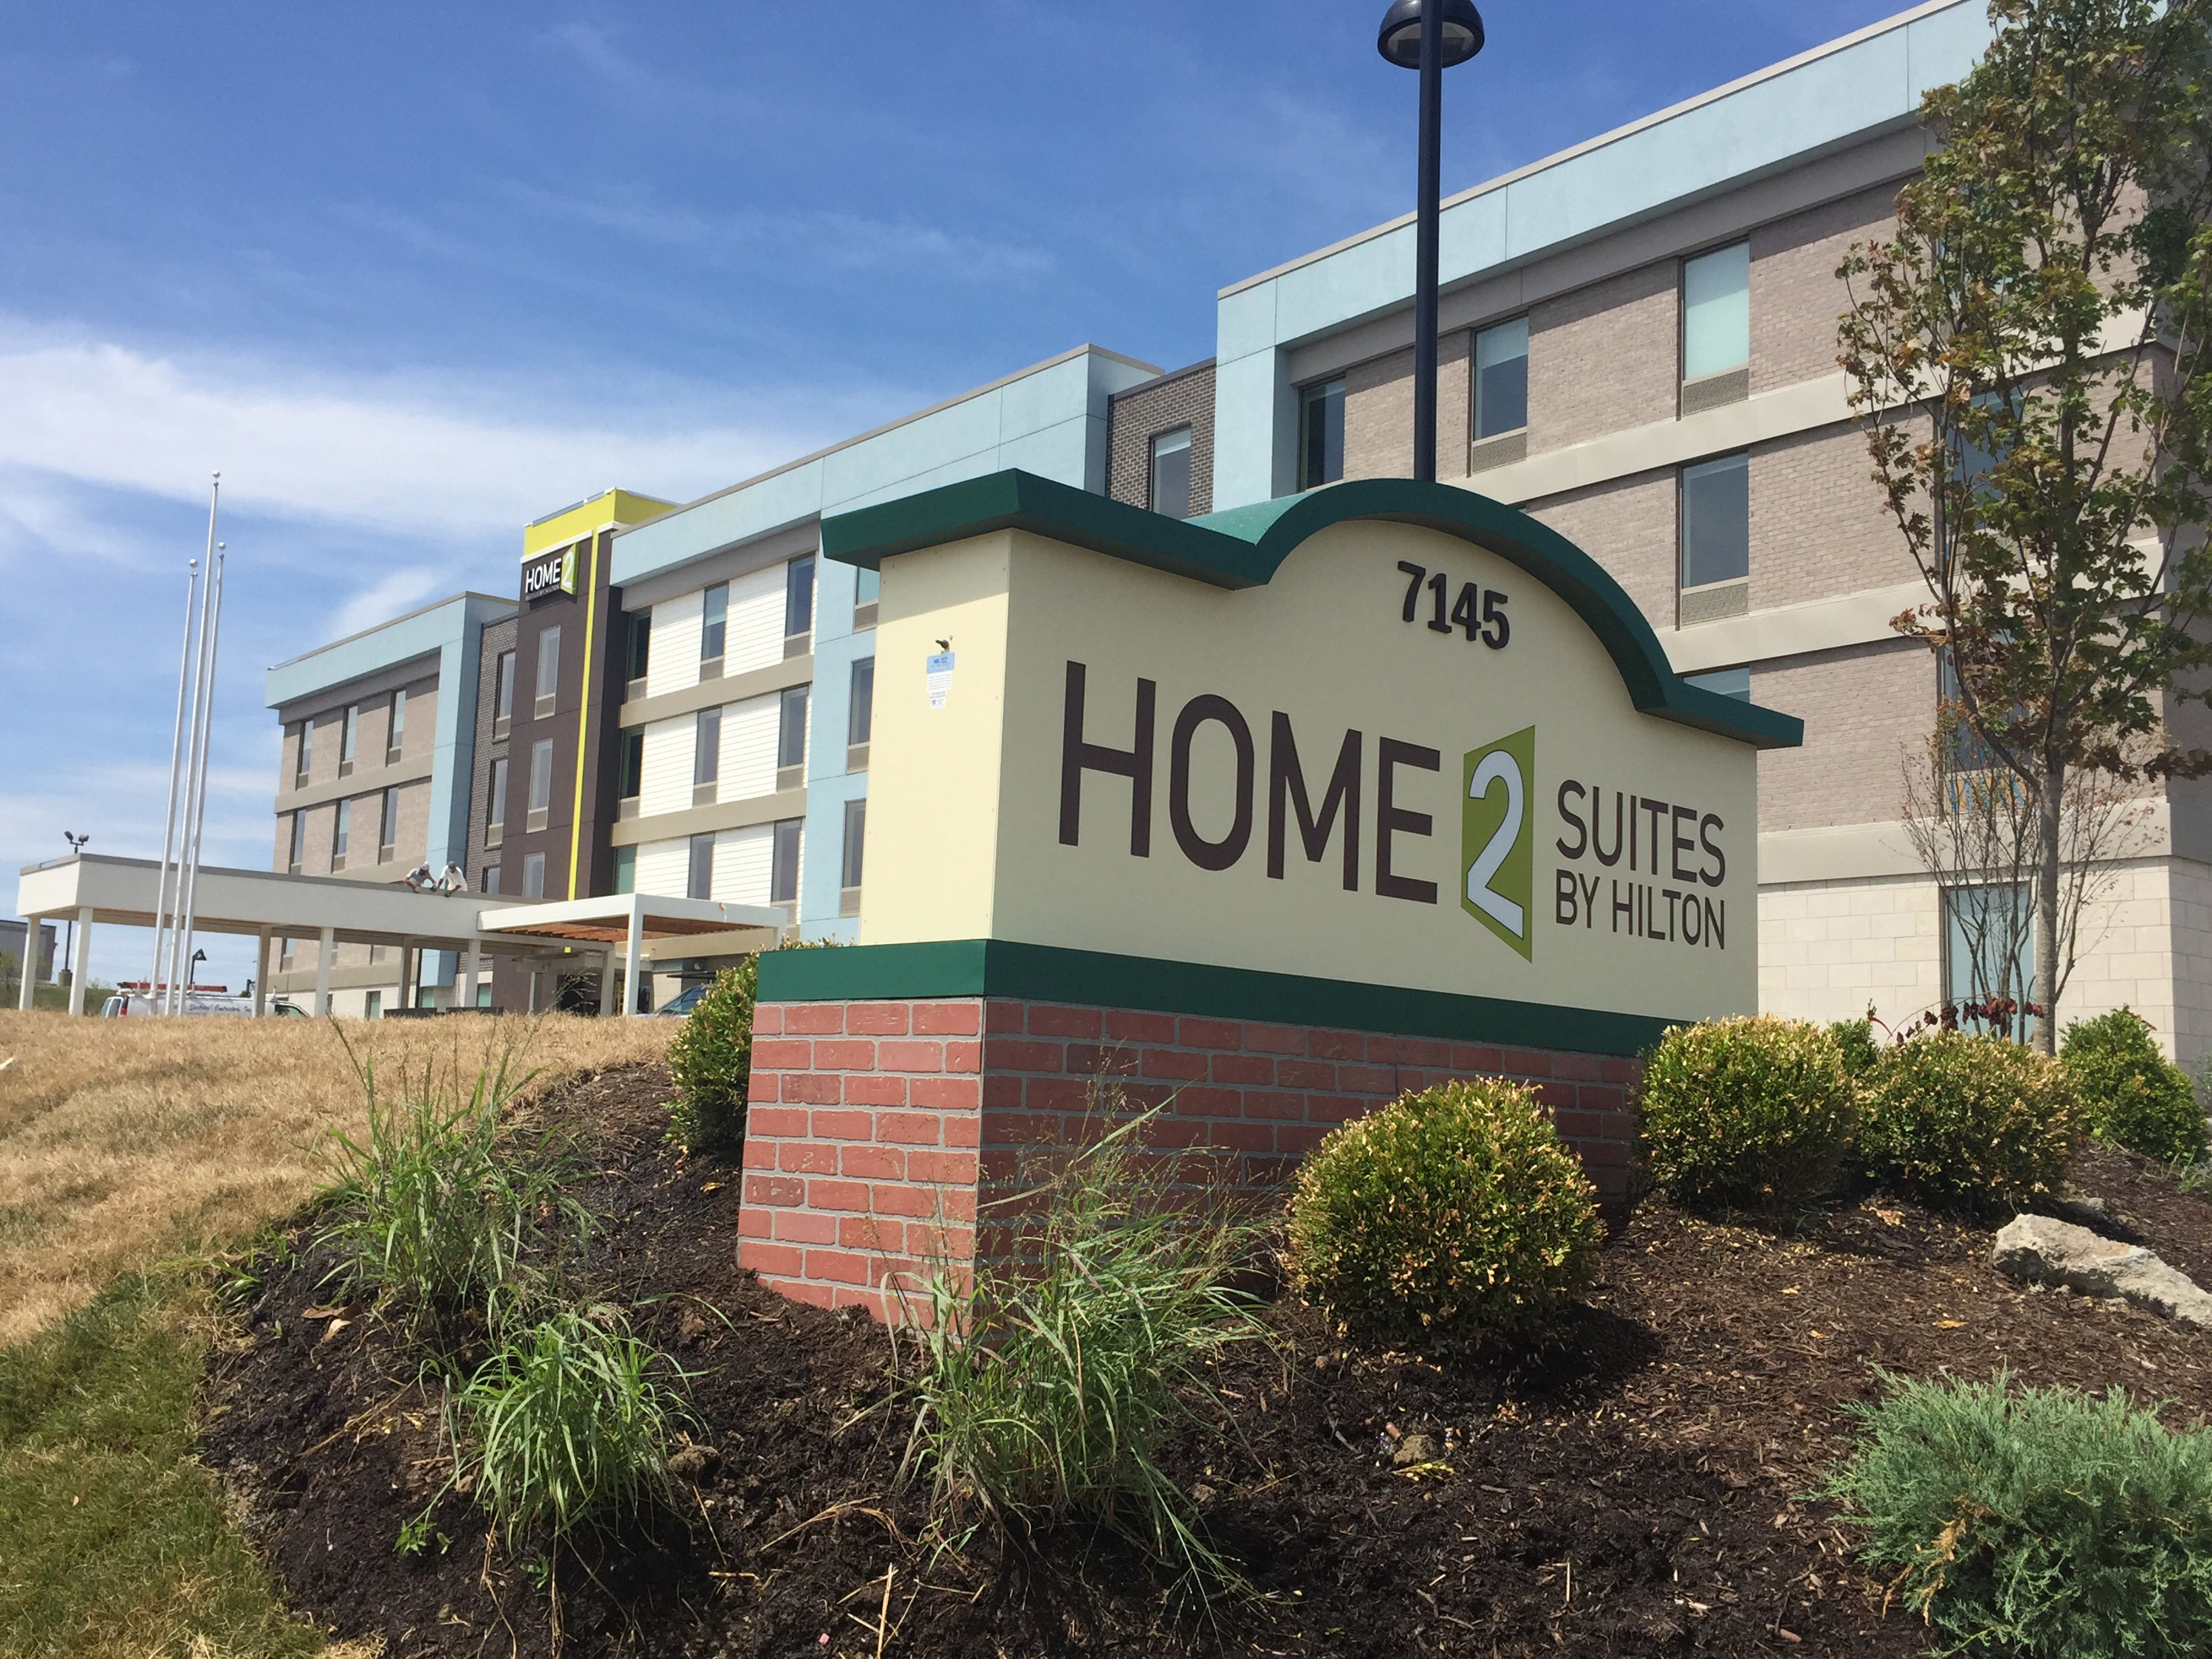 Home2 suites by hilton expands in ohio with newest property in liberty township